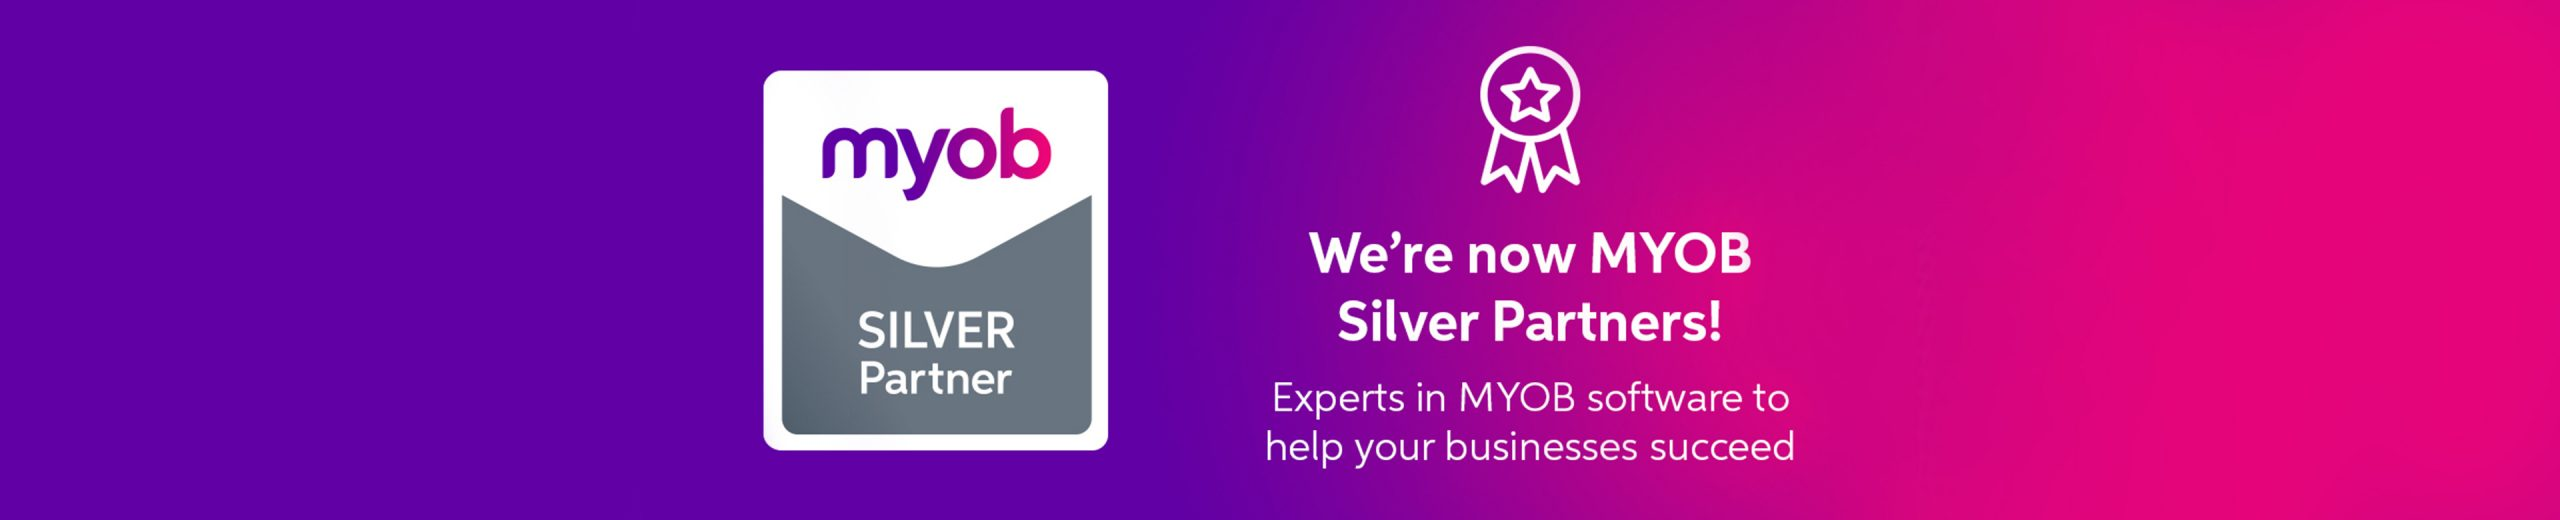 MYOB Home Page Slider 4@2x